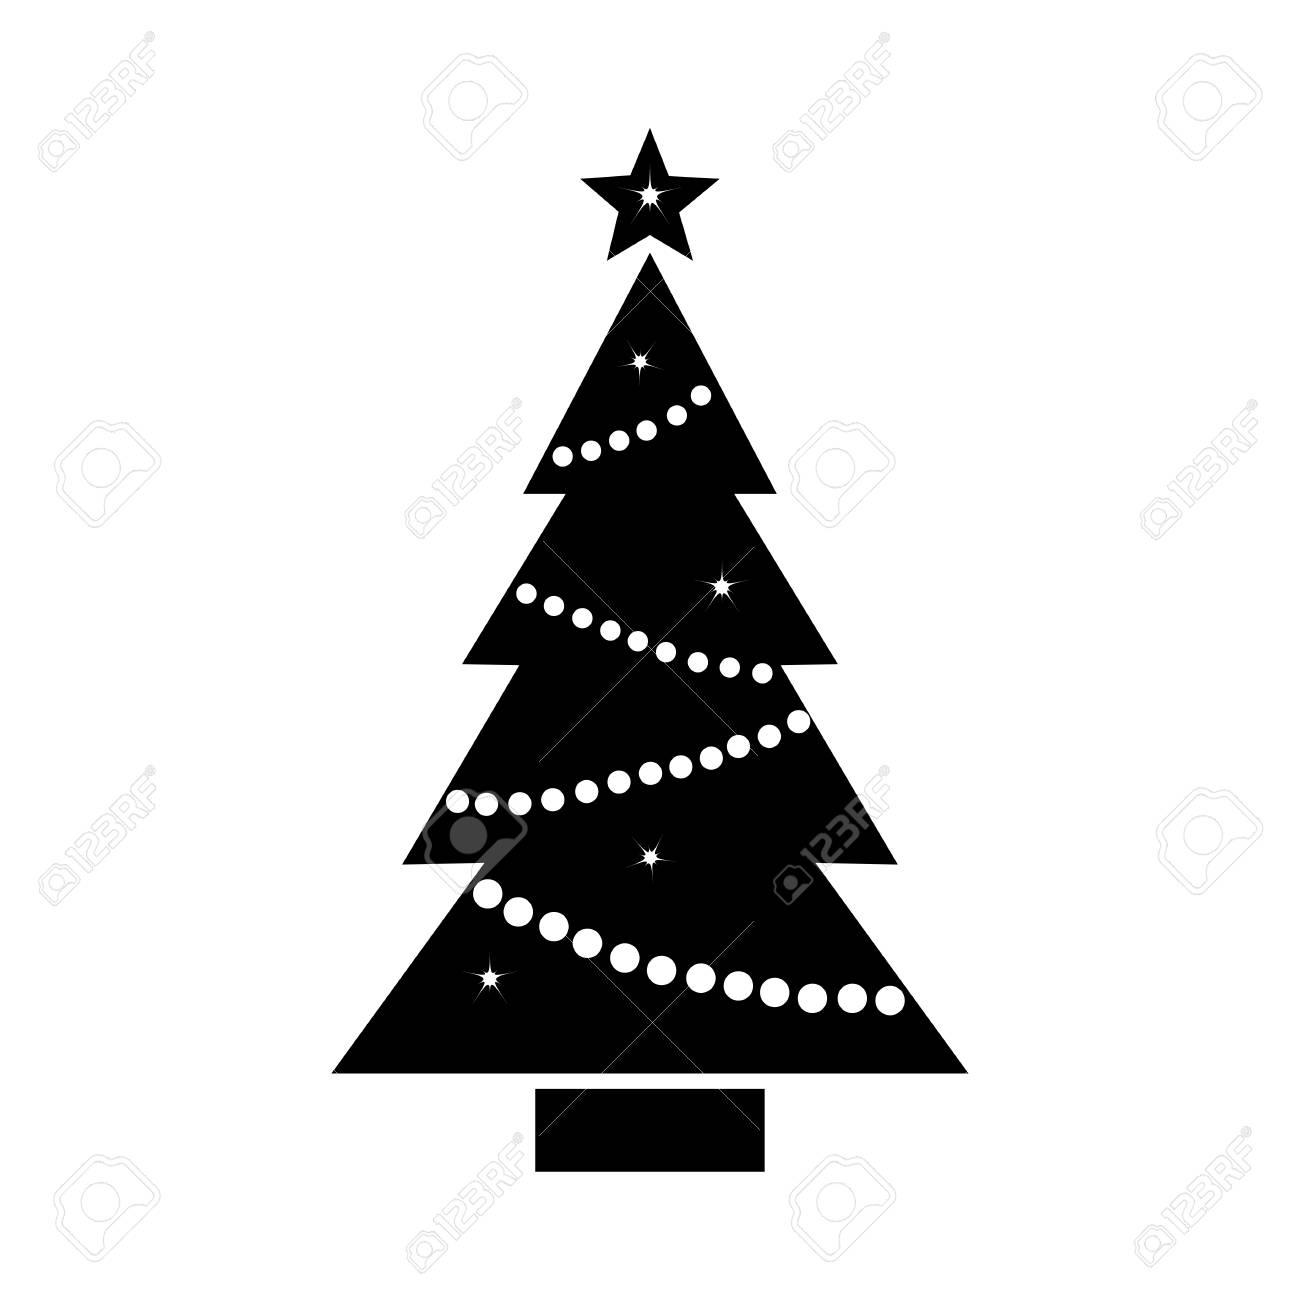 Christmas Tree Icon With Star And Garland Black And White Silhouette